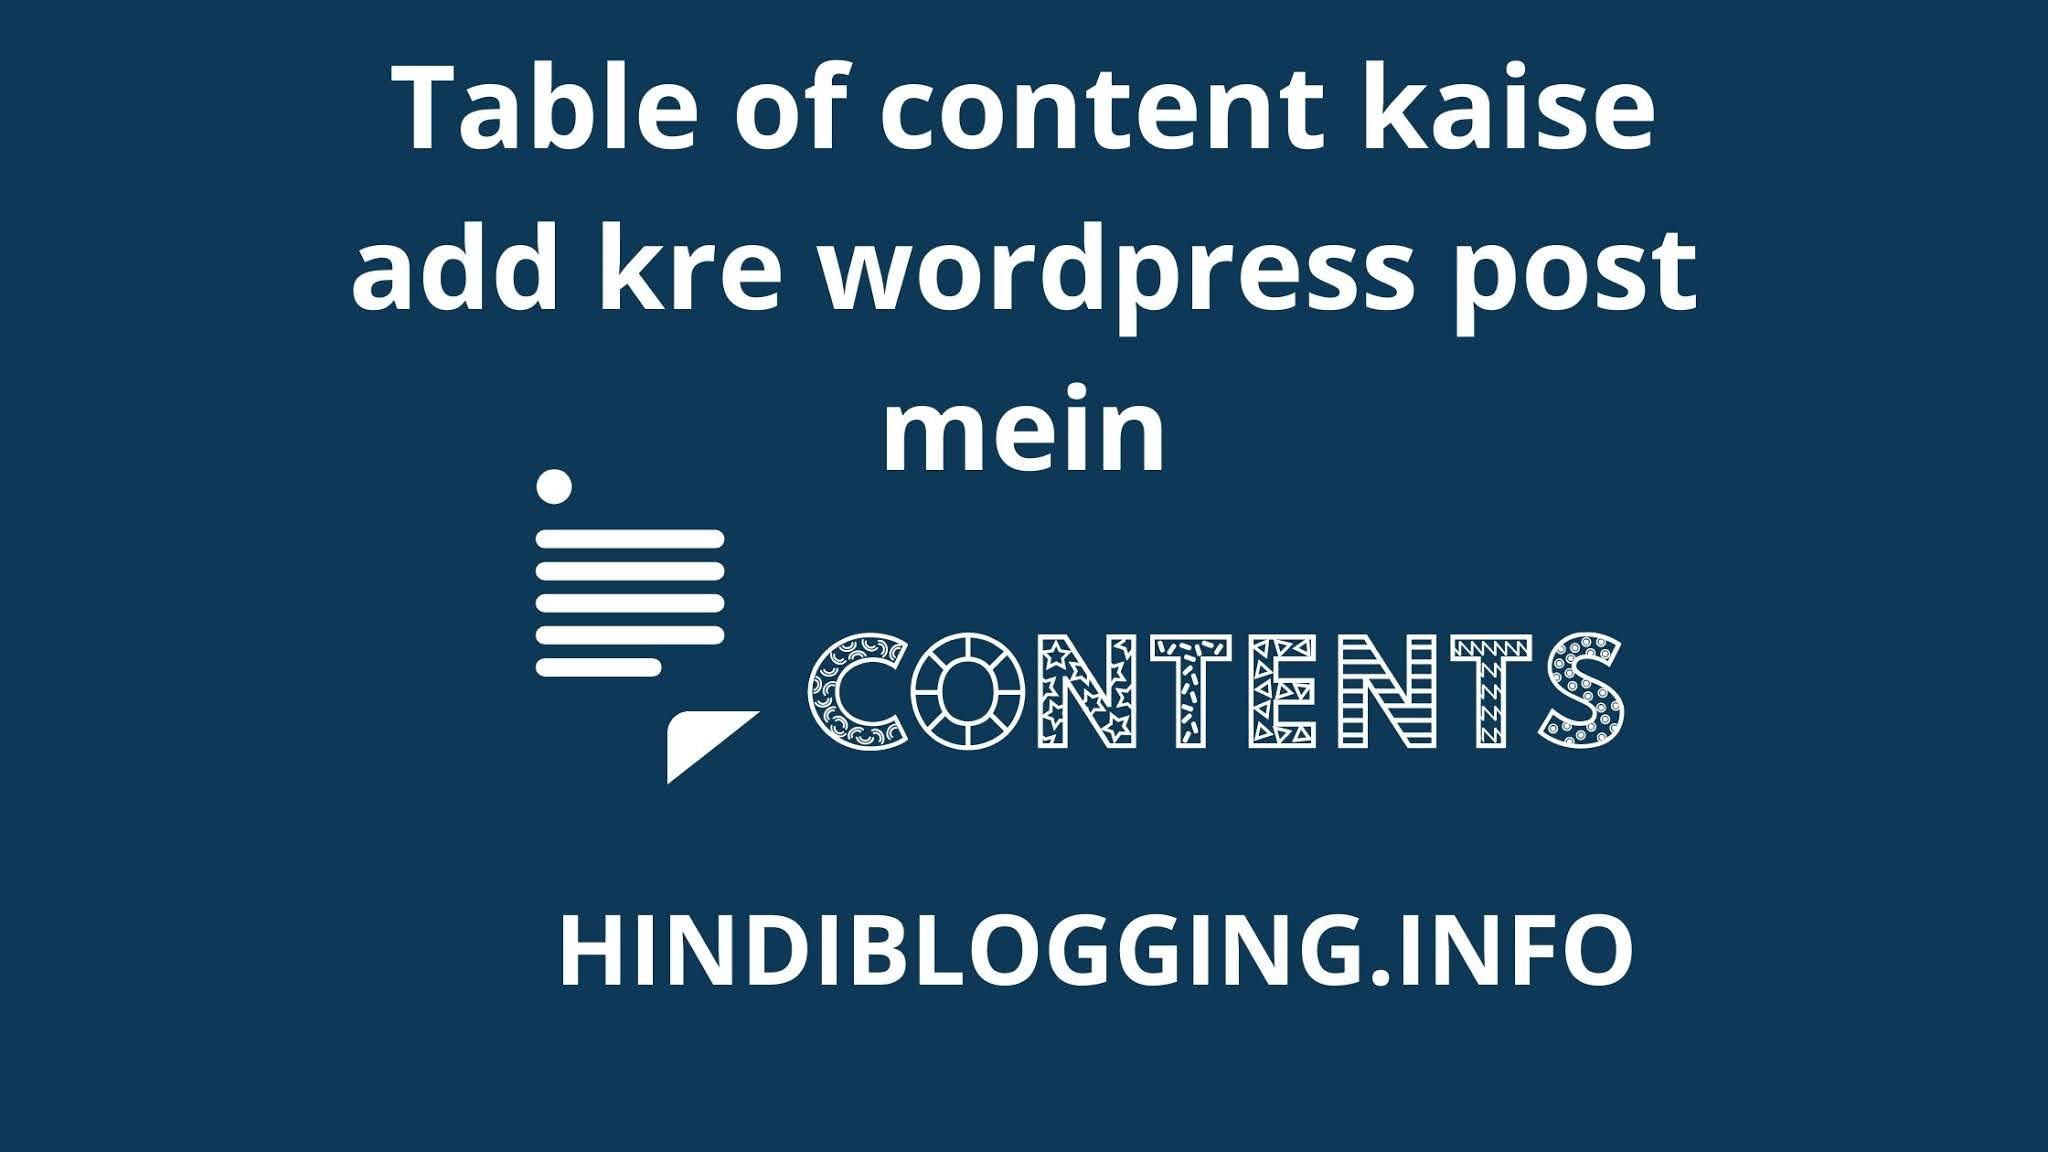 Table of content kaise add kre wordpress post mein